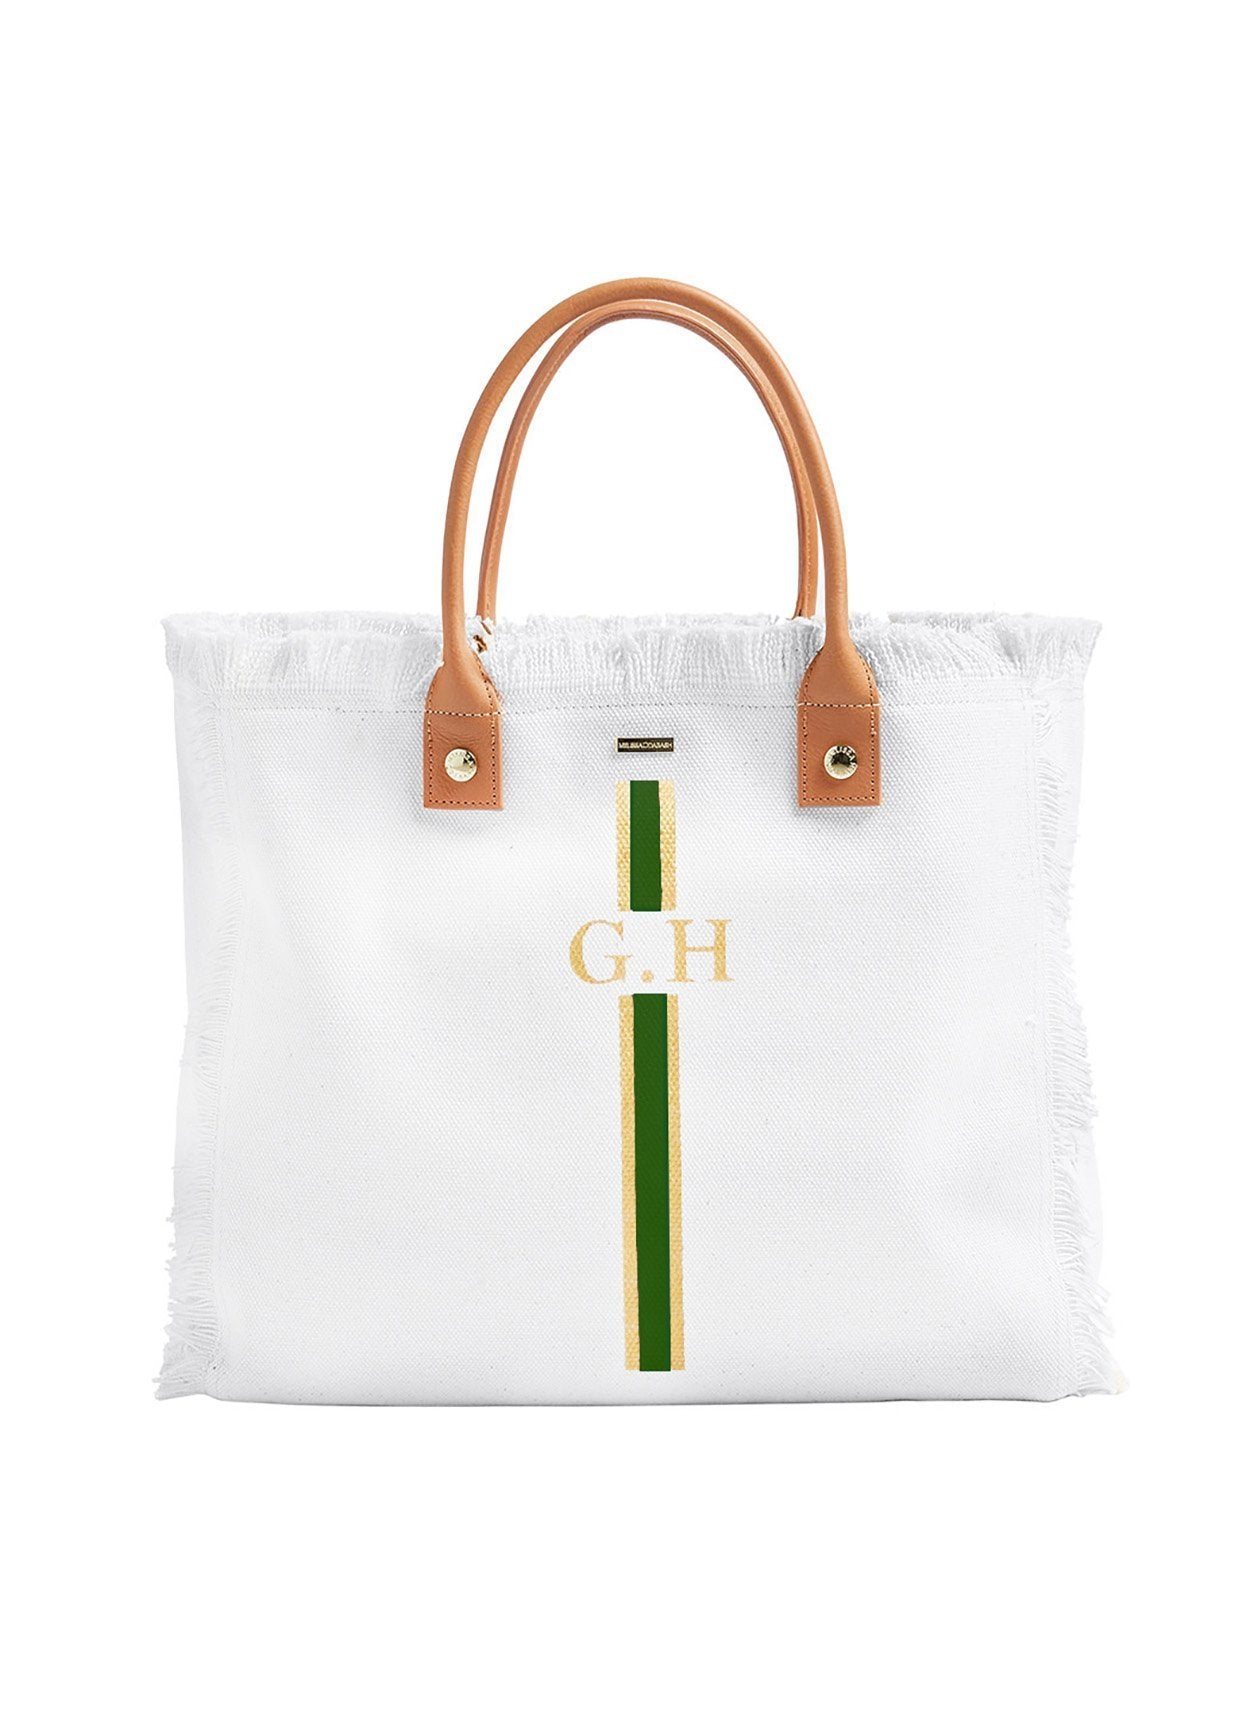 Cap Ferrat White Gold/Green